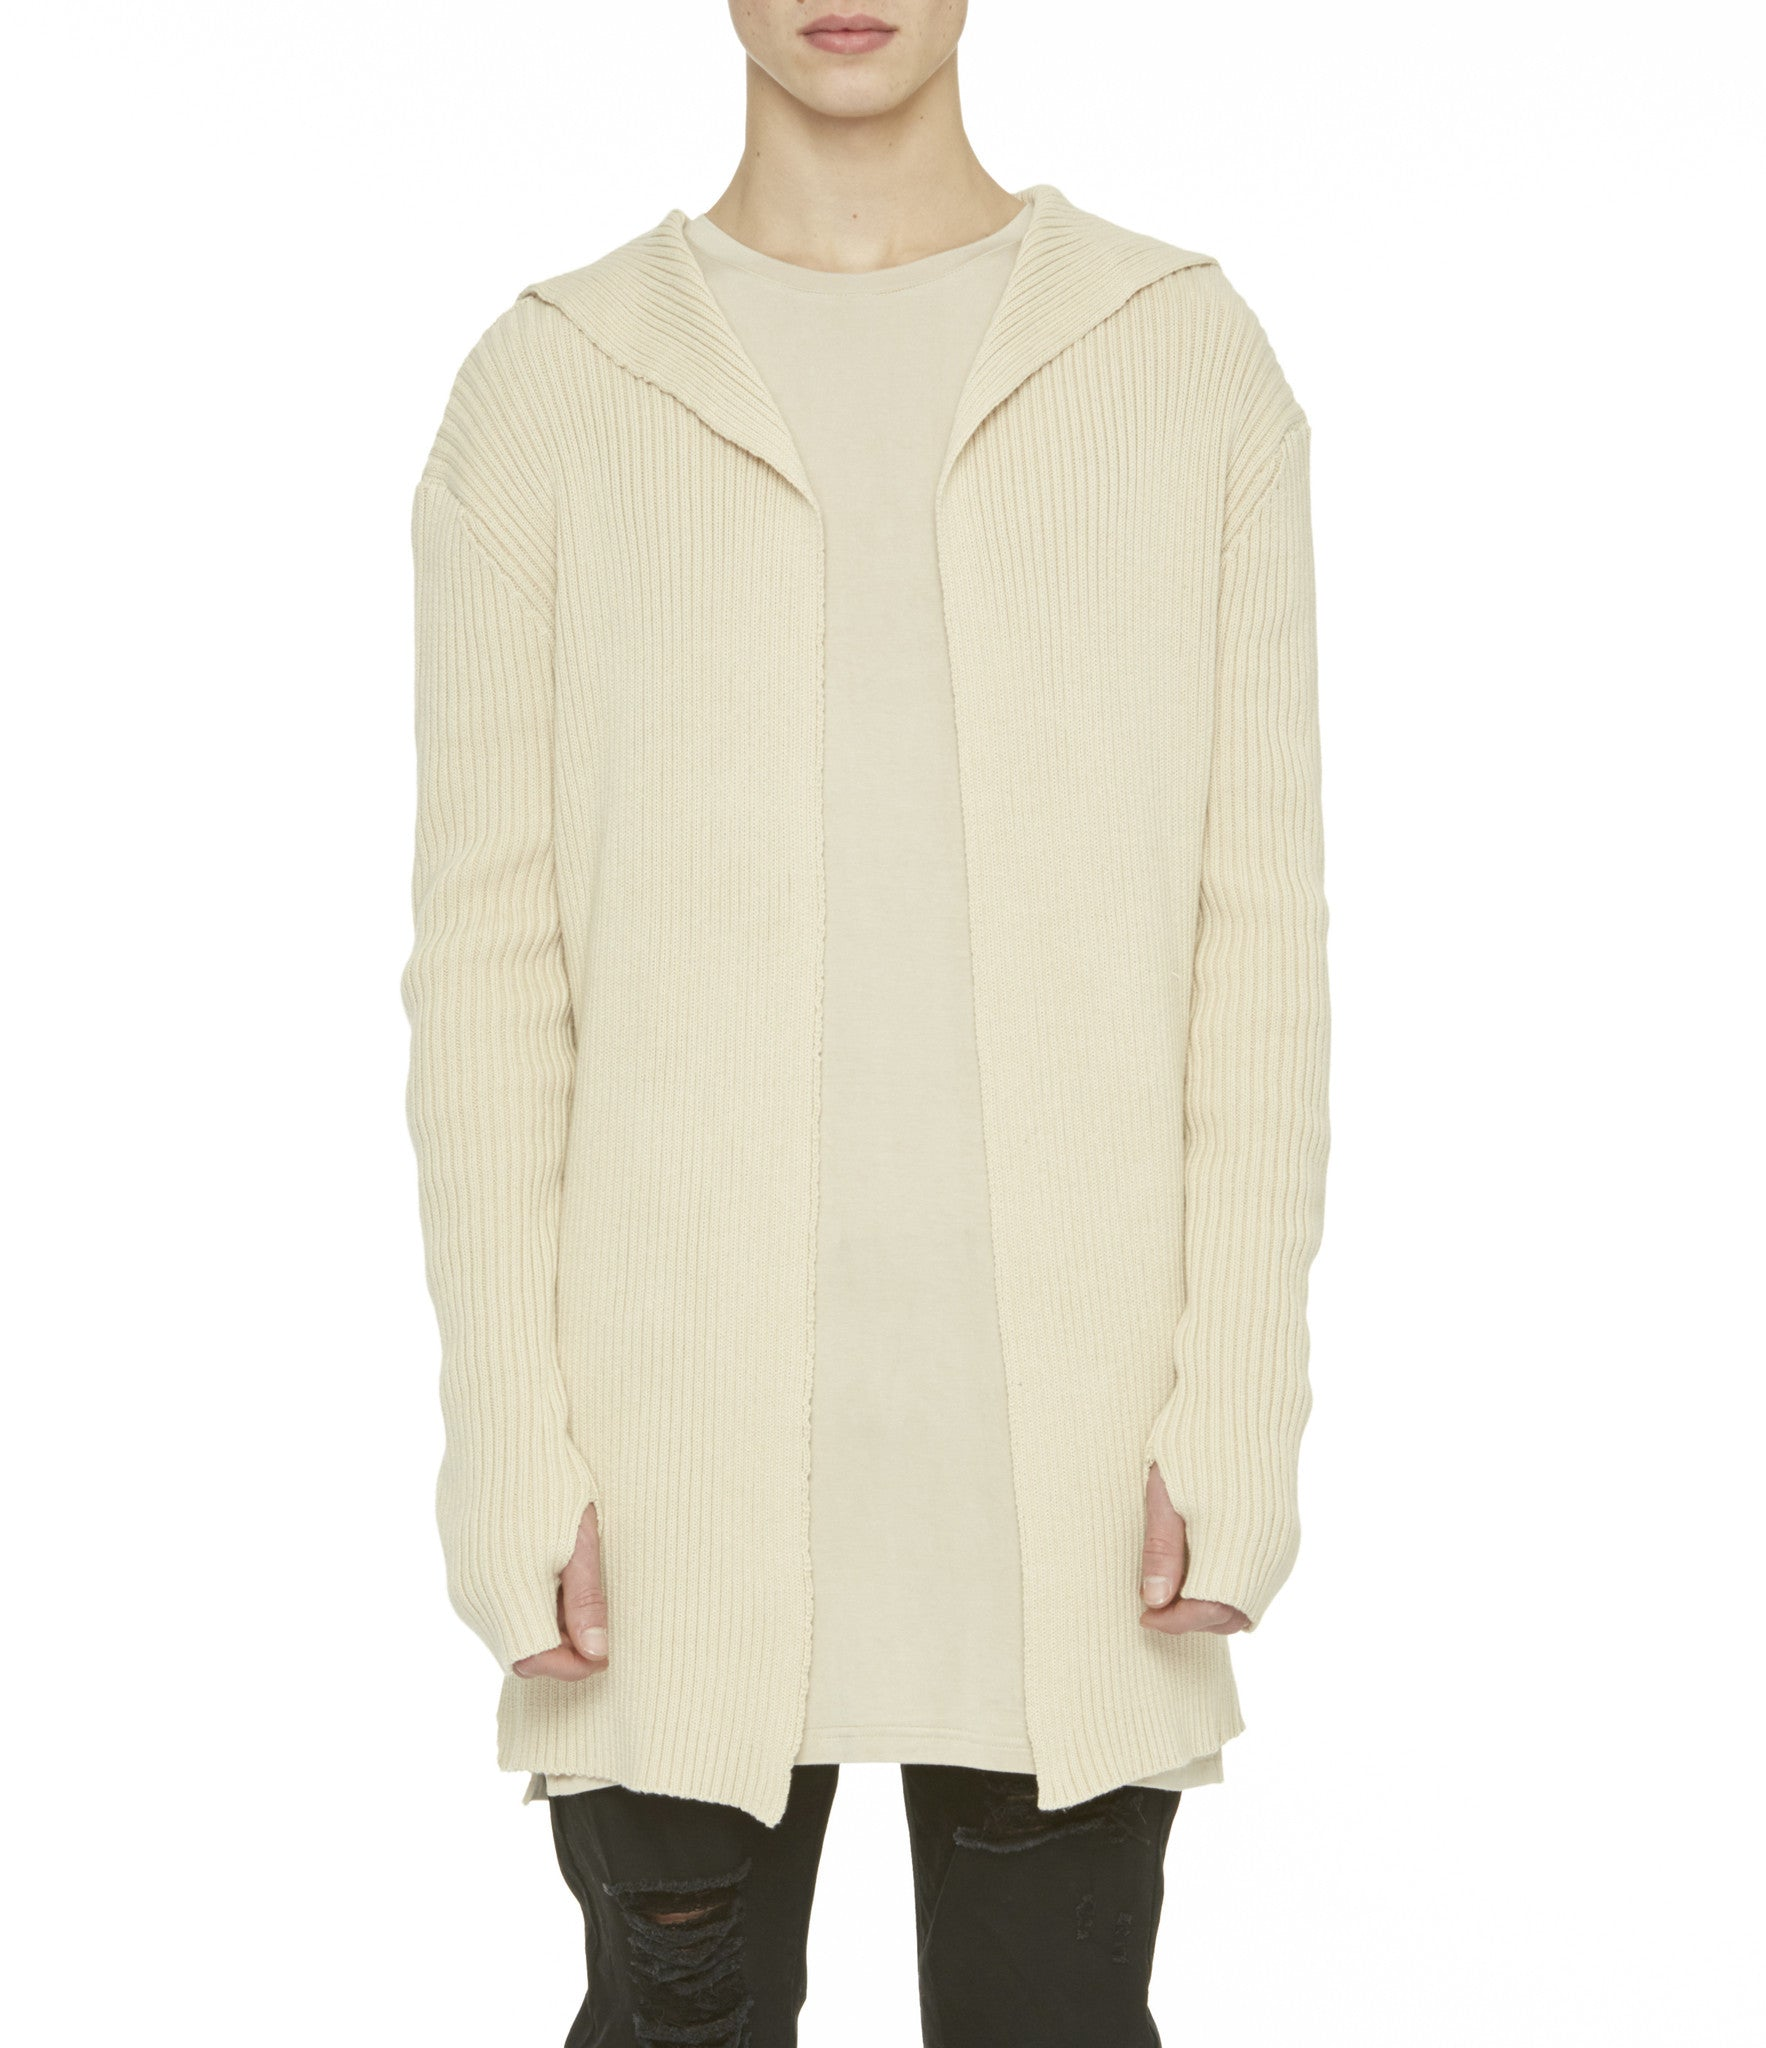 Underated - Hooded Knit Cardigan - COMMON  - 3